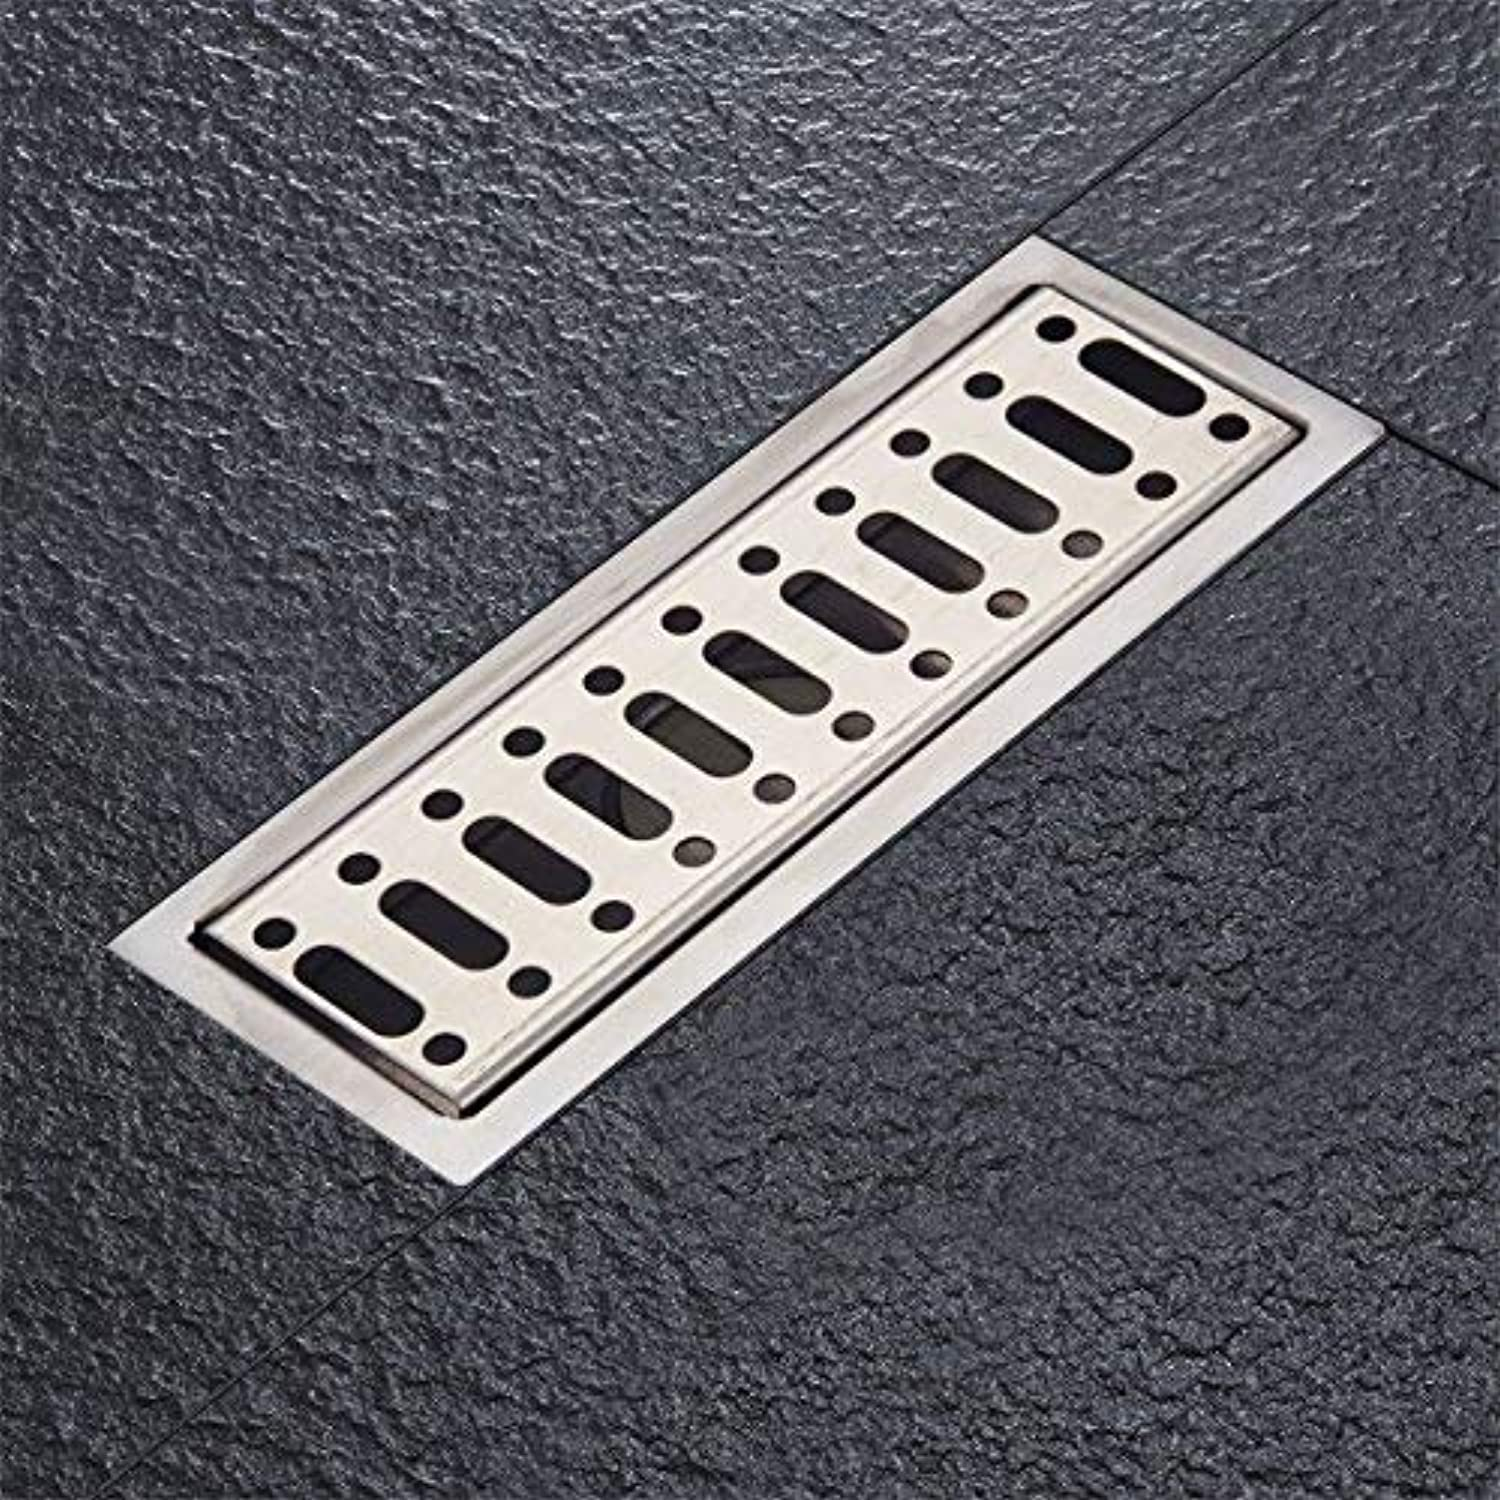 Fyeer Linear Shower Drain Floor Drain Bars Drain Strainers with Removable Grate, 8-Inch, Brushed 304 Stainless Steel